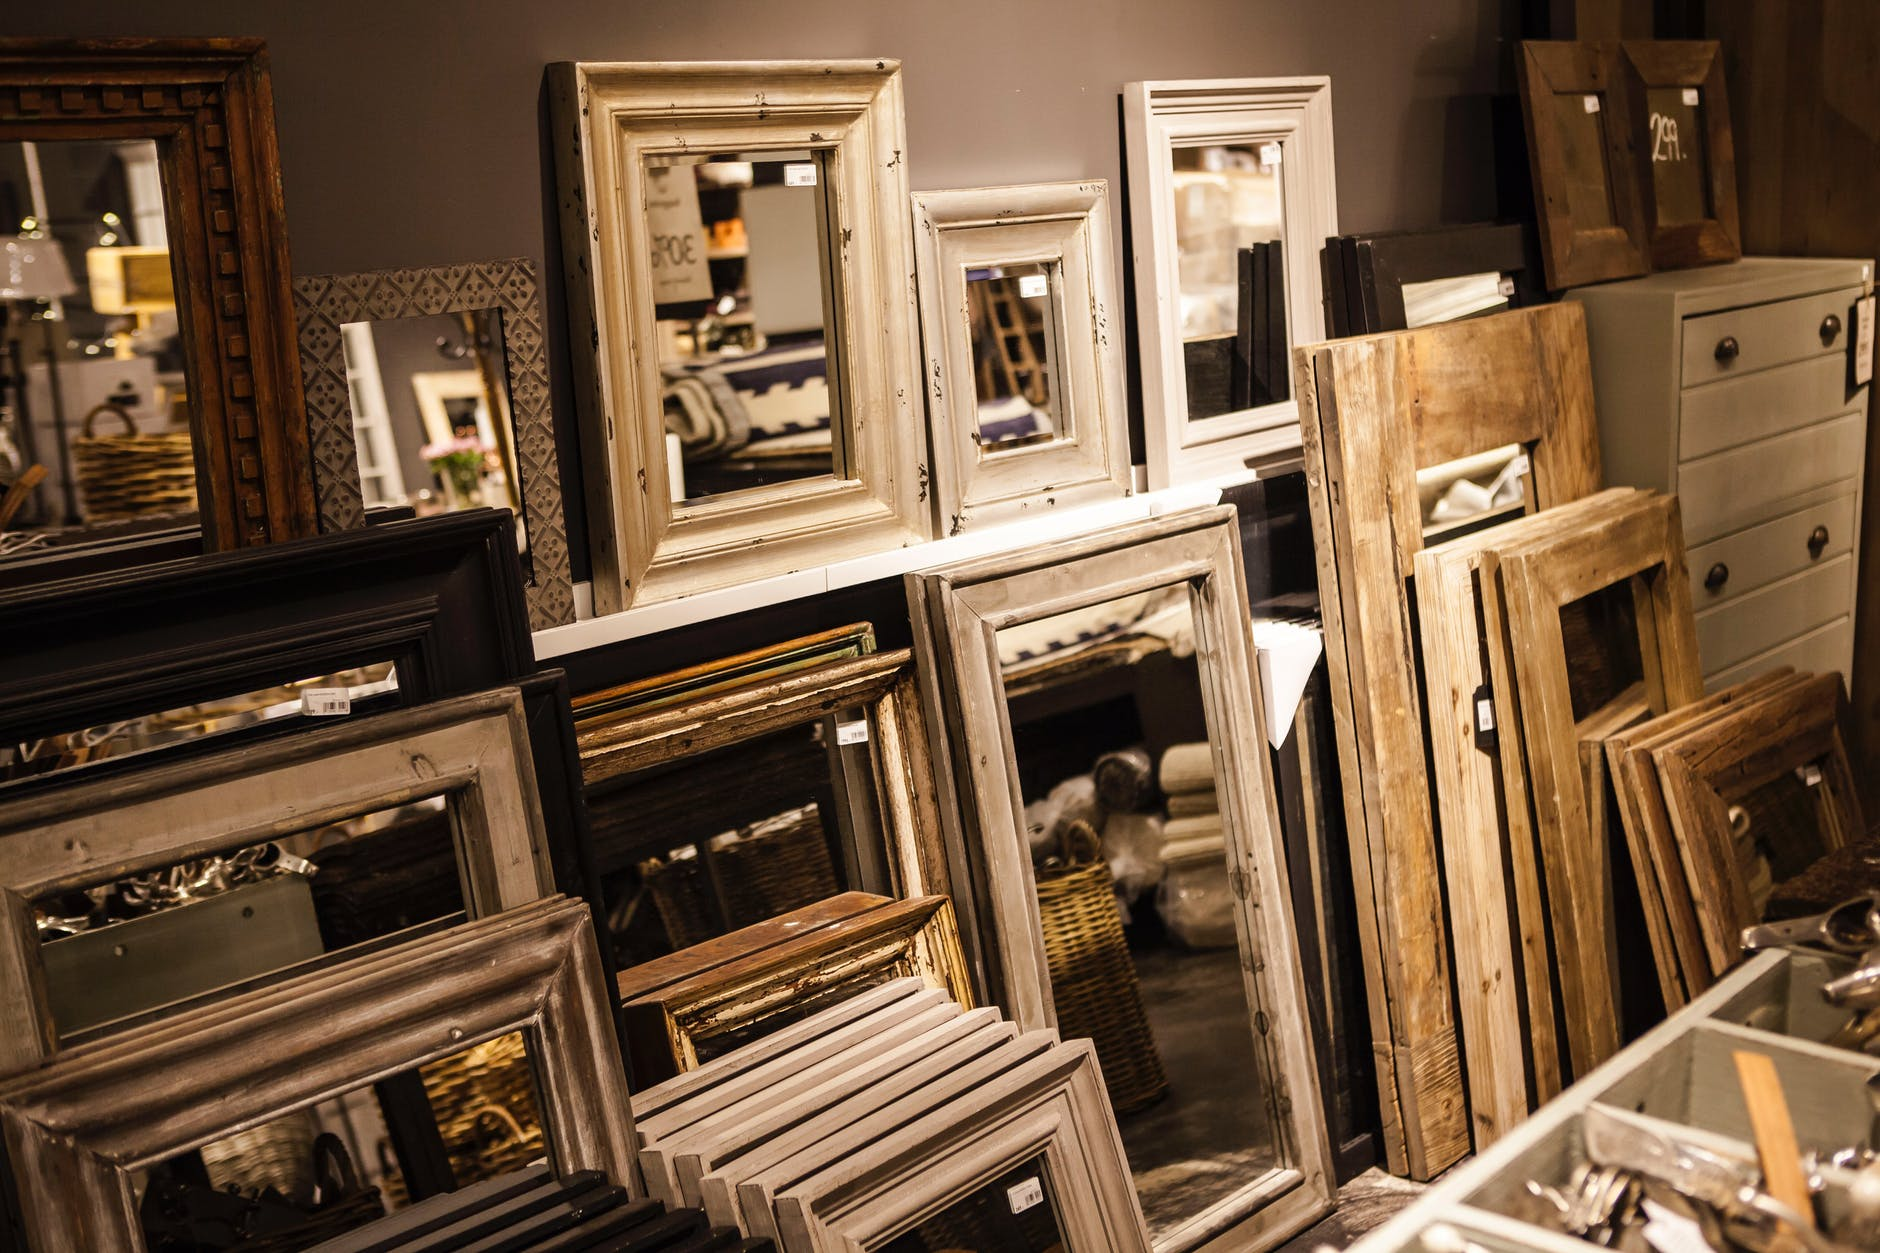 Mirrors-not-to-gift-as-a-gift